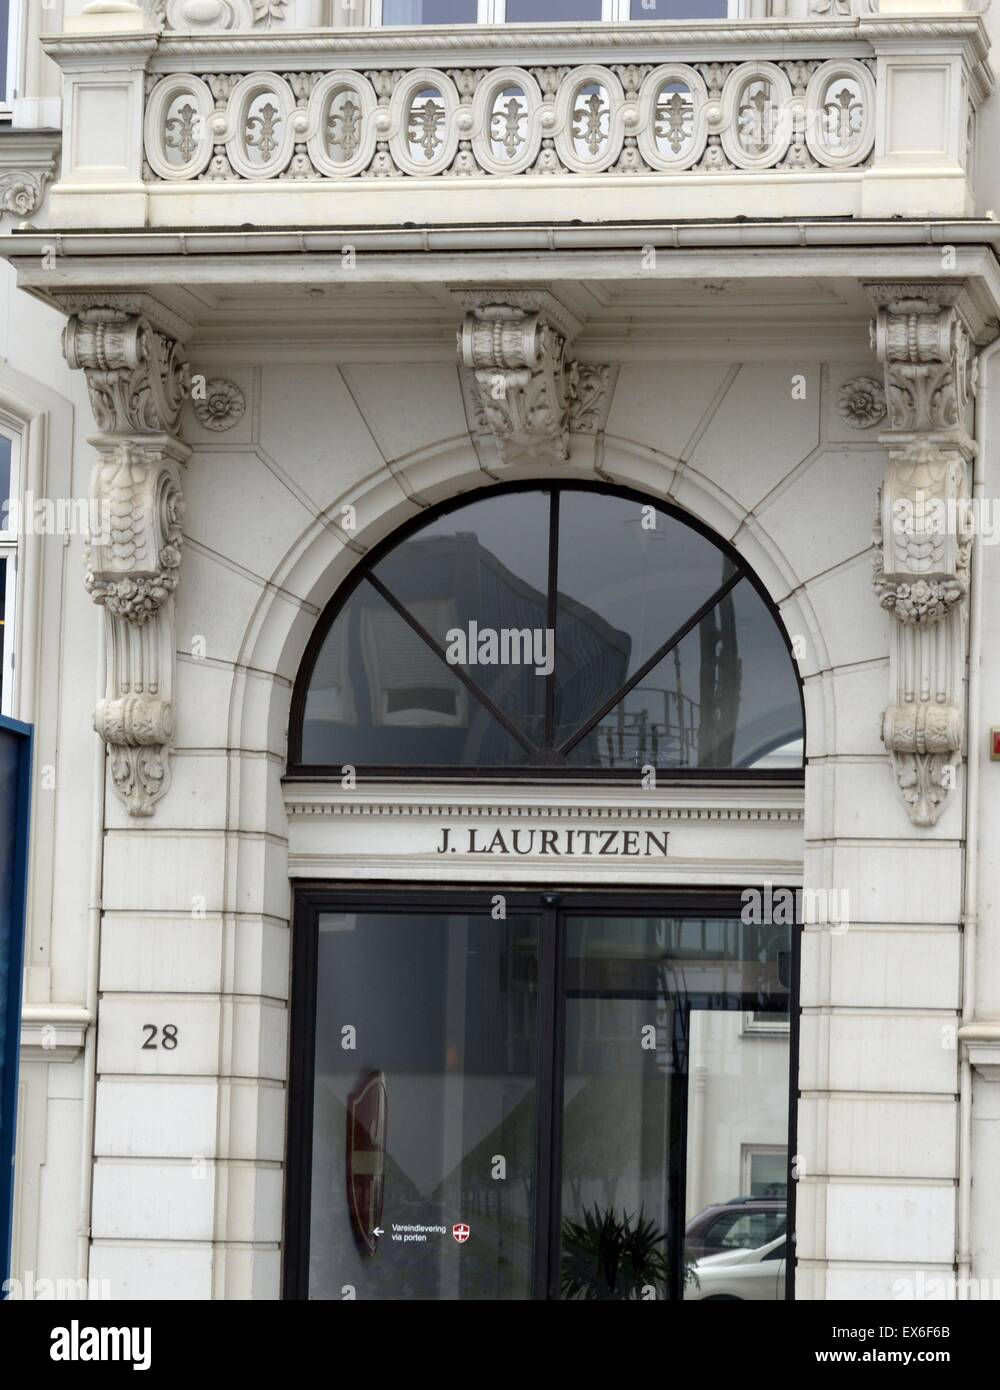 J. Lauritzen Headquarters in Copenhagen, Denmark. Established in Copenhagen since 1914, Lauritzen operates a fleet - Stock Image